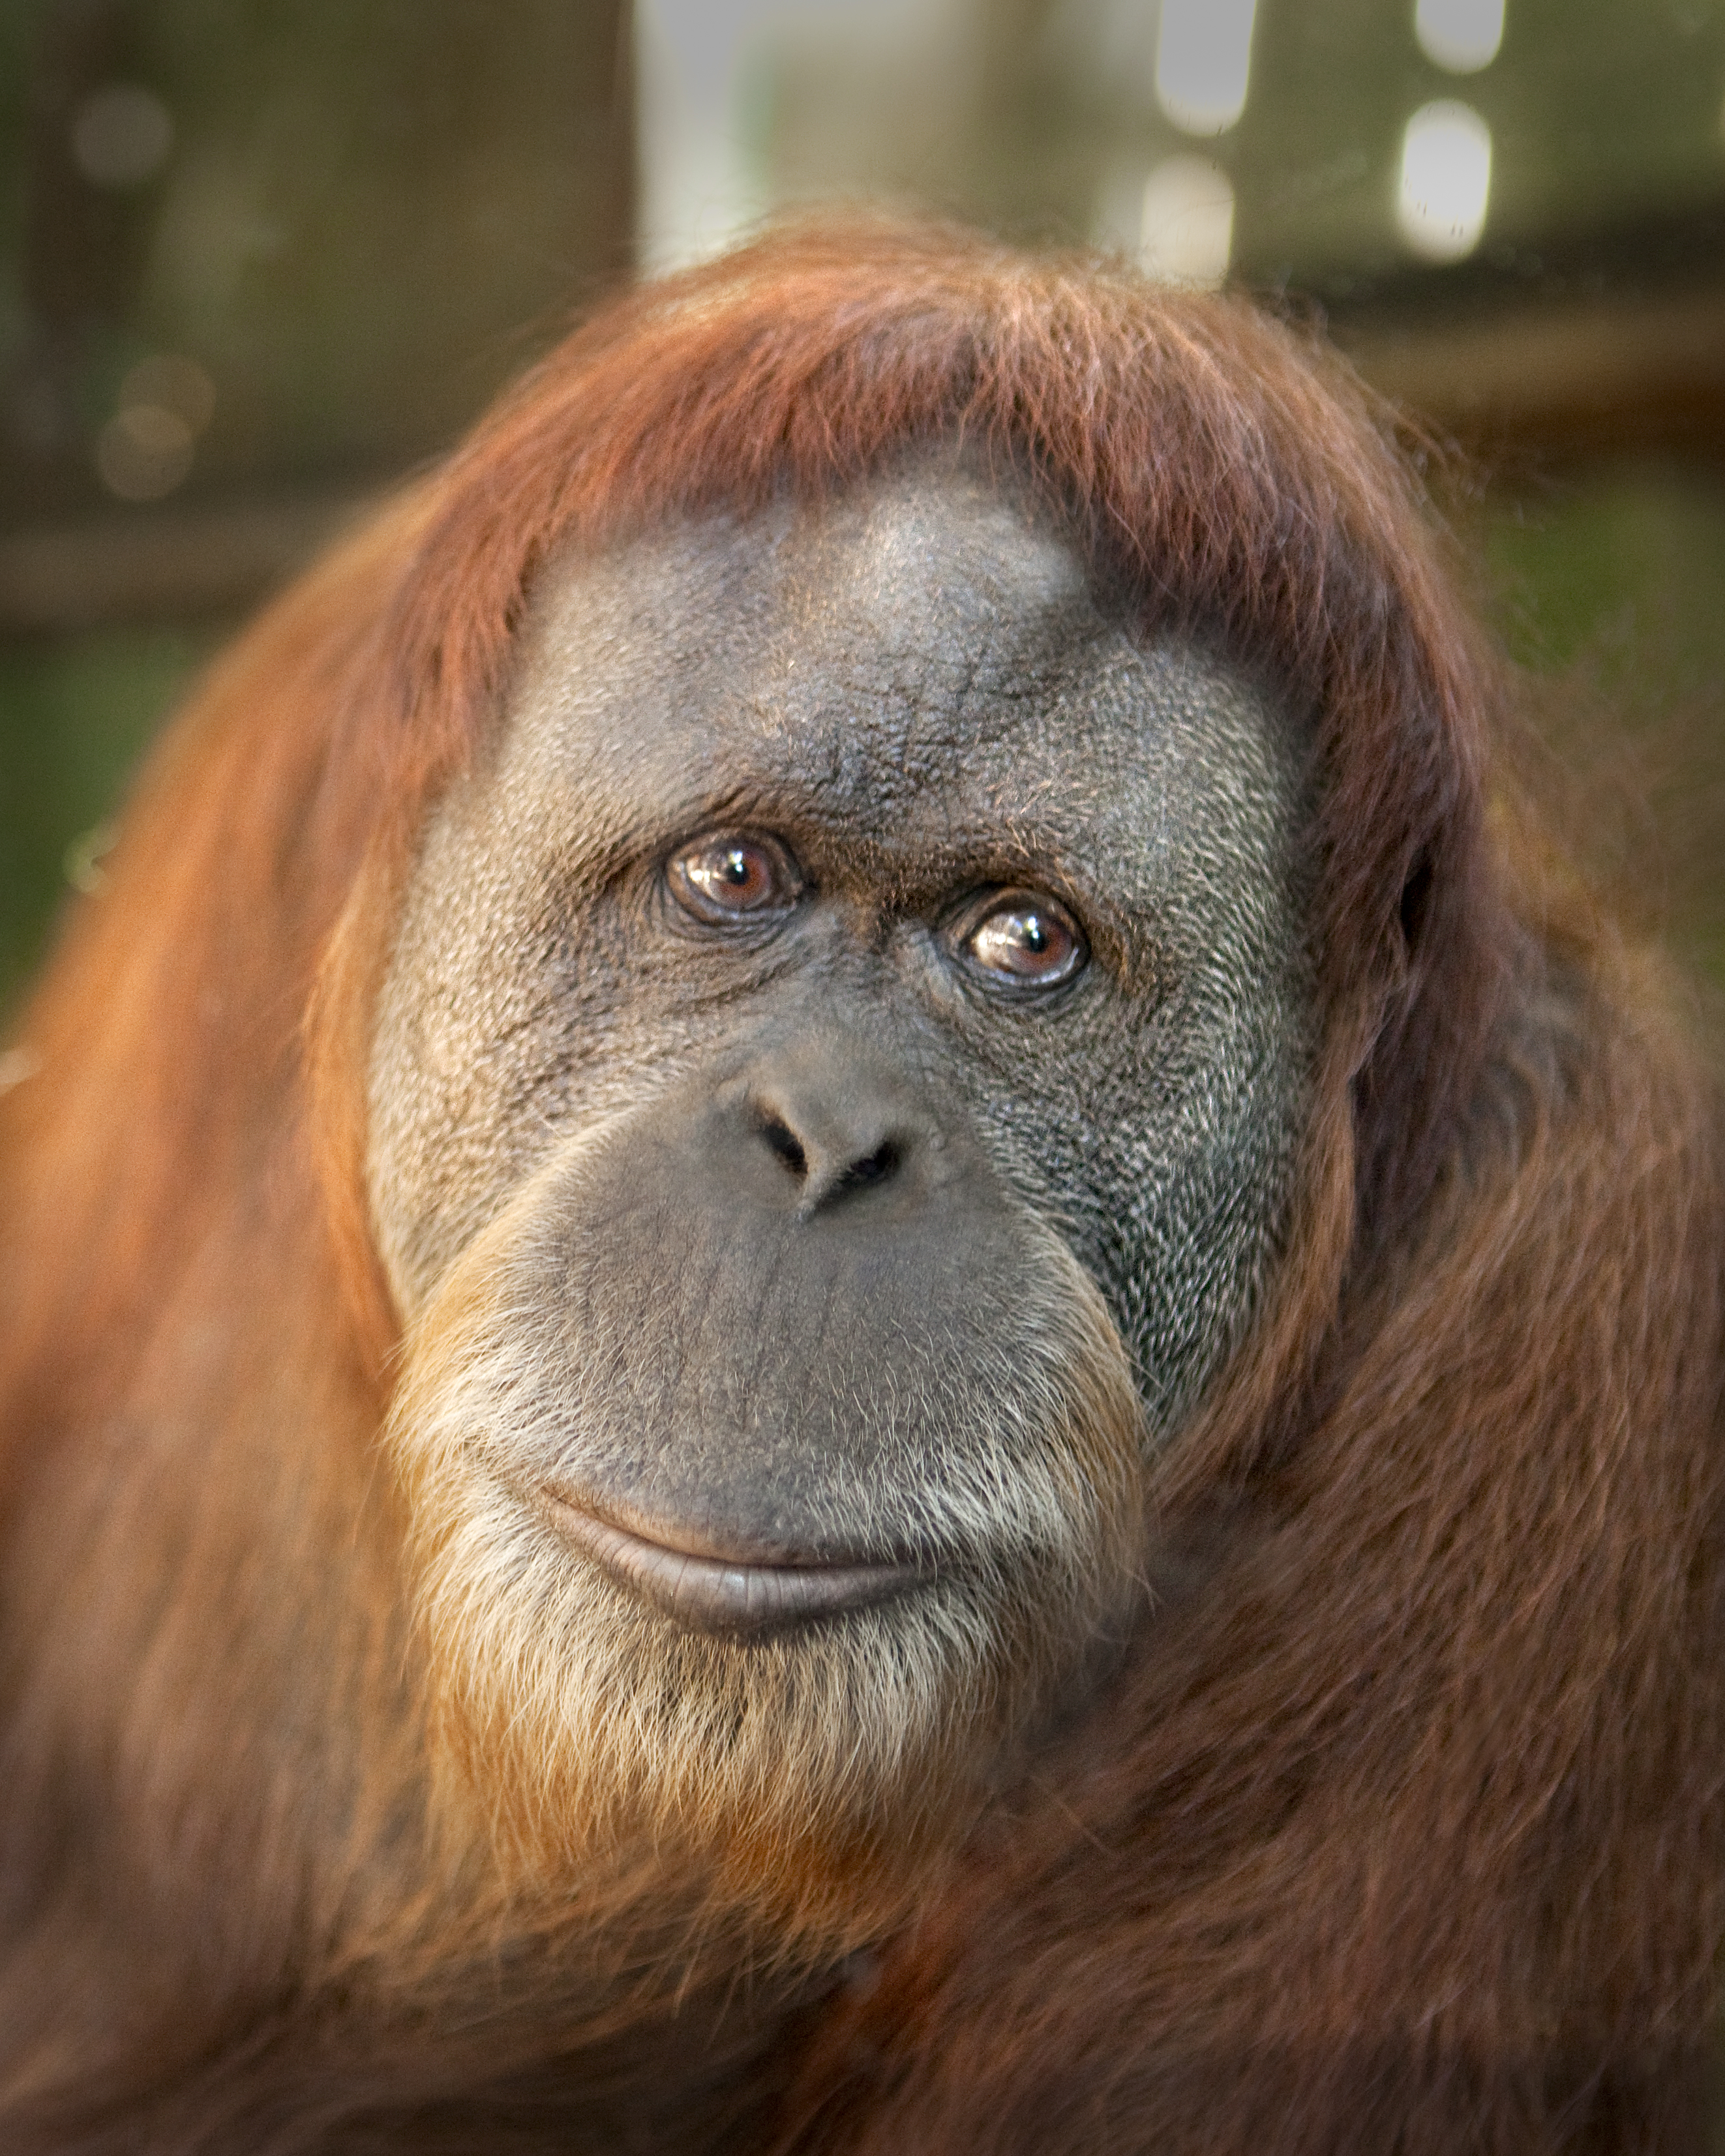 sumatran orangutan The sumatran orangutan genome was sequenced in january 2011 following humans and chimpanzees, the sumatran orangutan became the third species of hominid to have its genome sequenced.